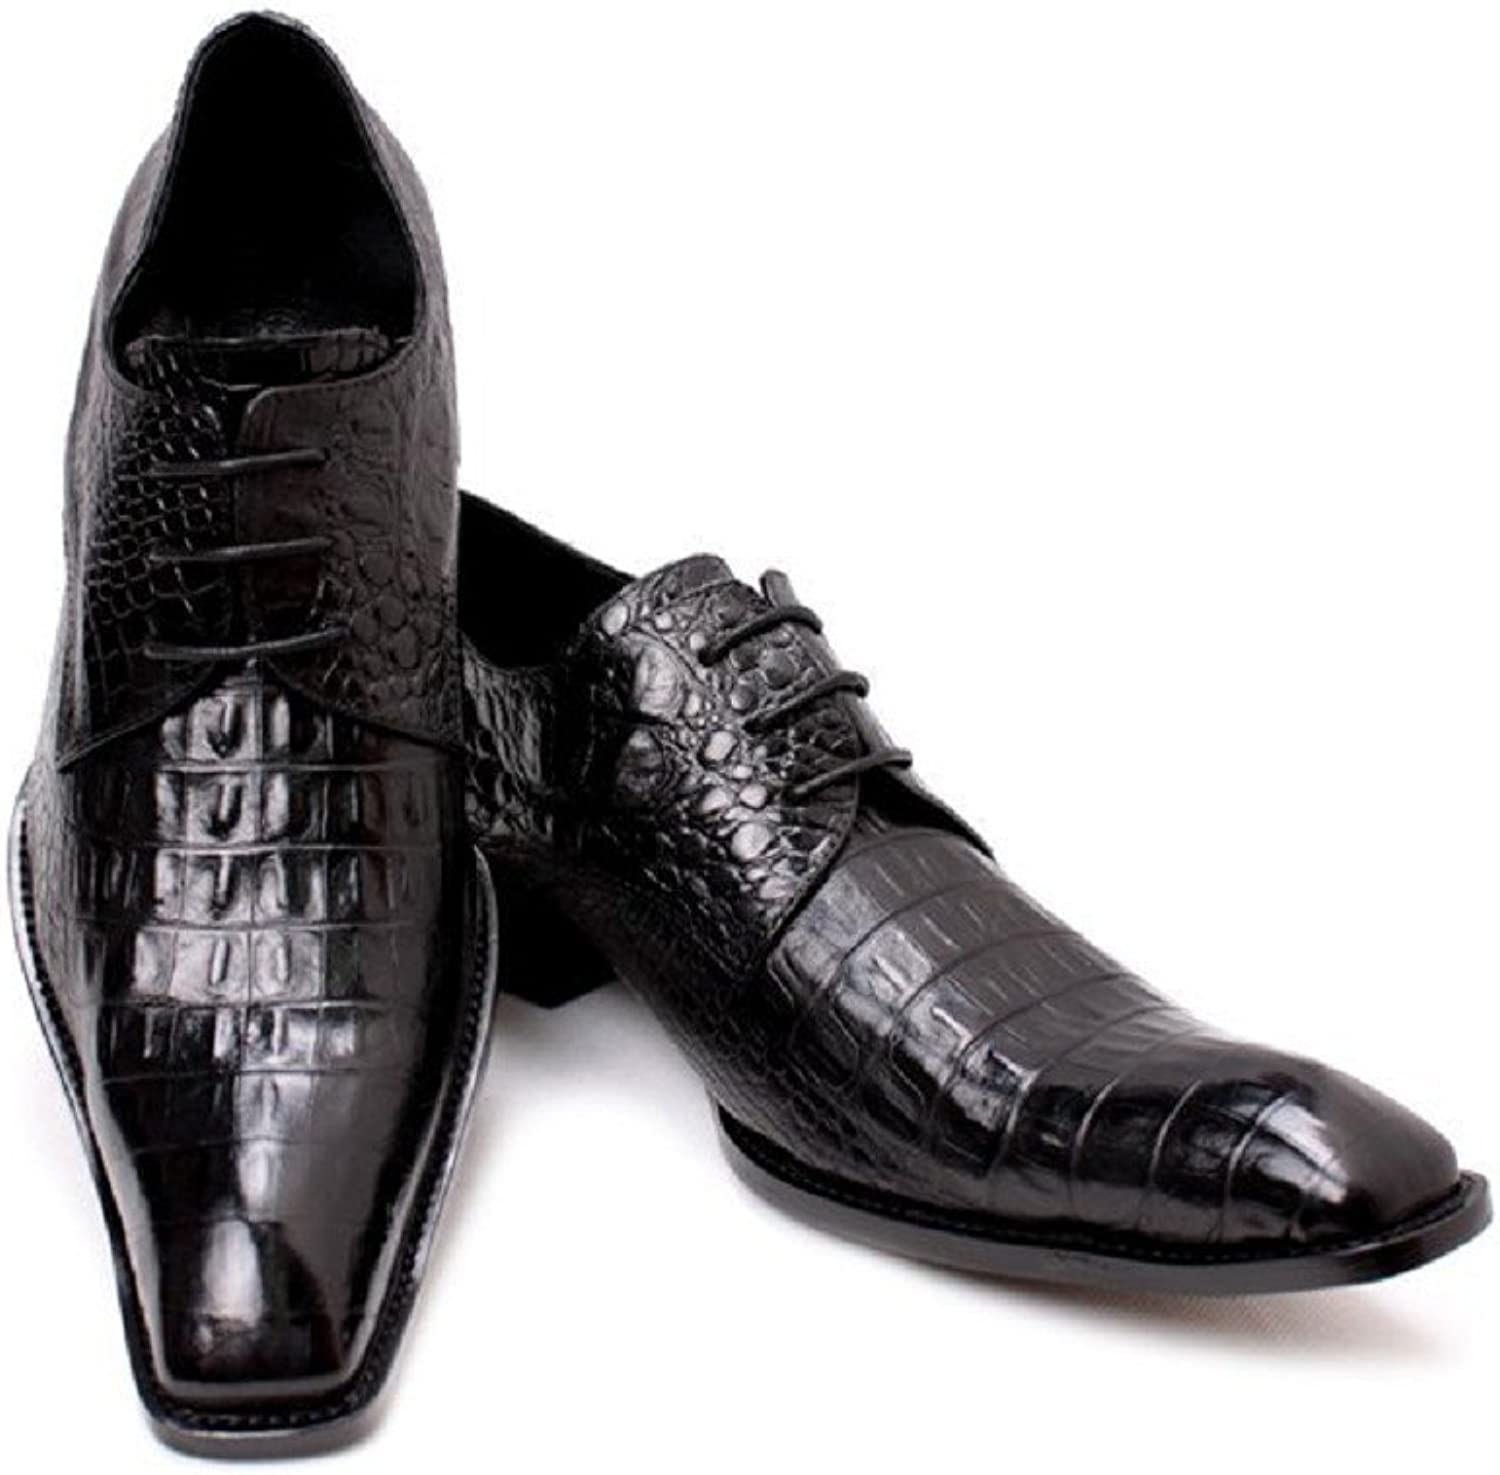 2 color Size 5-12 New Alligator Print Genuine Leather Dress Oxfords Mens shoes Brown